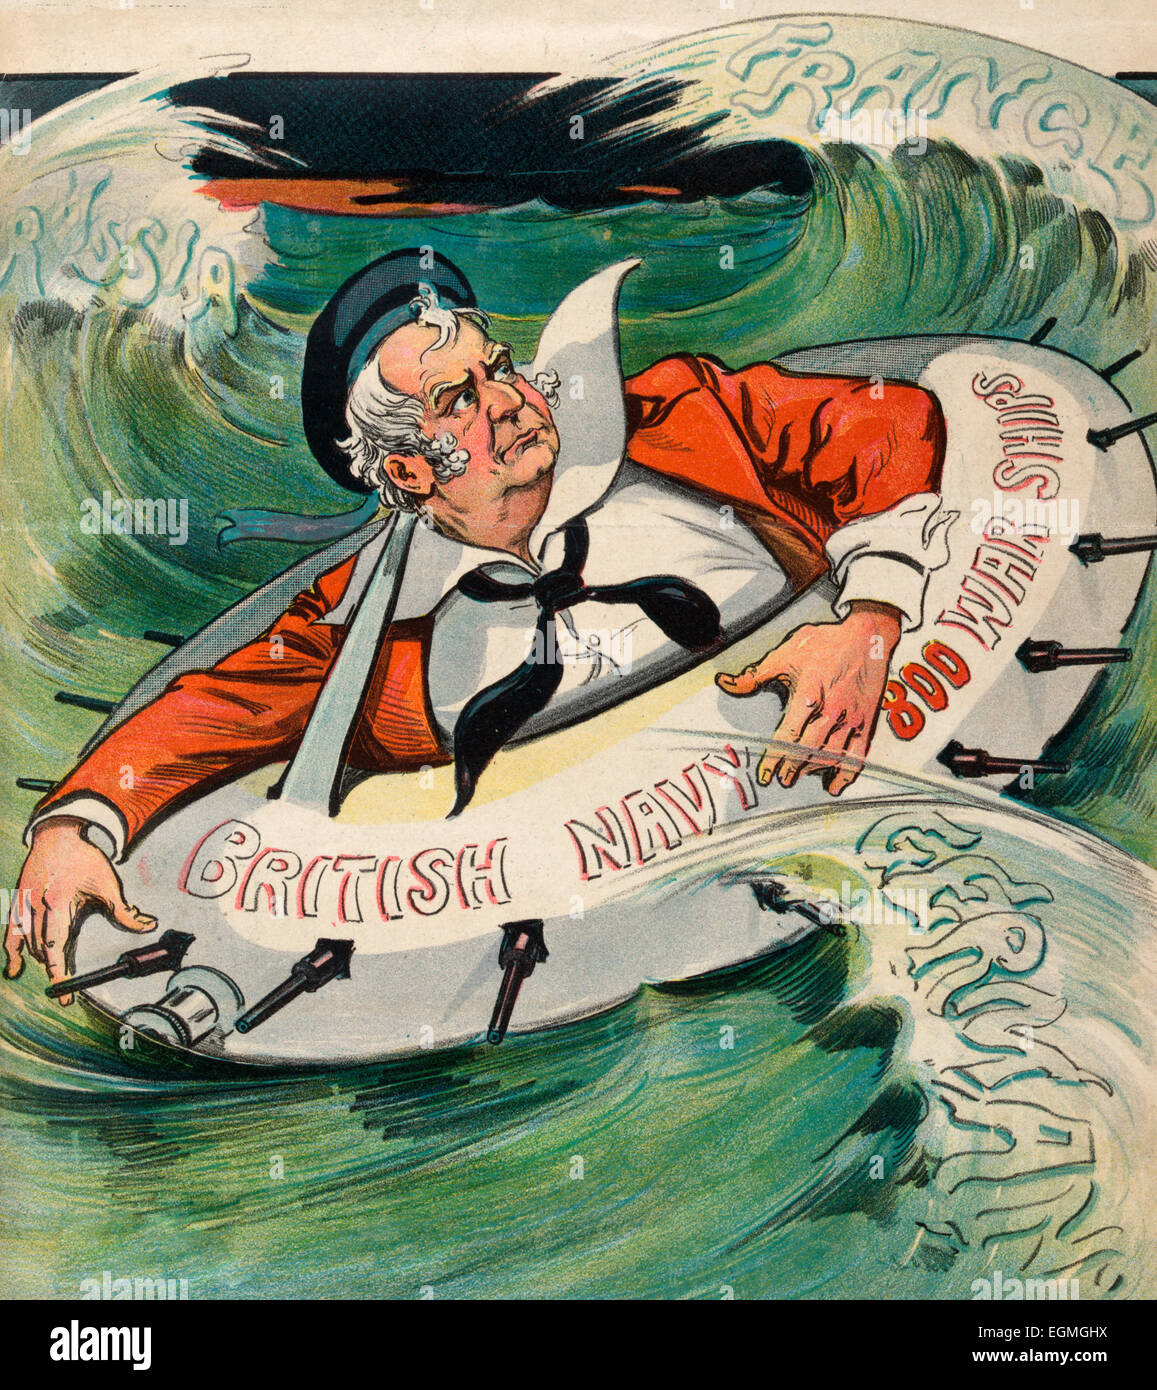 If He Has to take to water - Illustration showing John Bull as a sailor, floating in a life-preserver labeled 'British - Stock Image